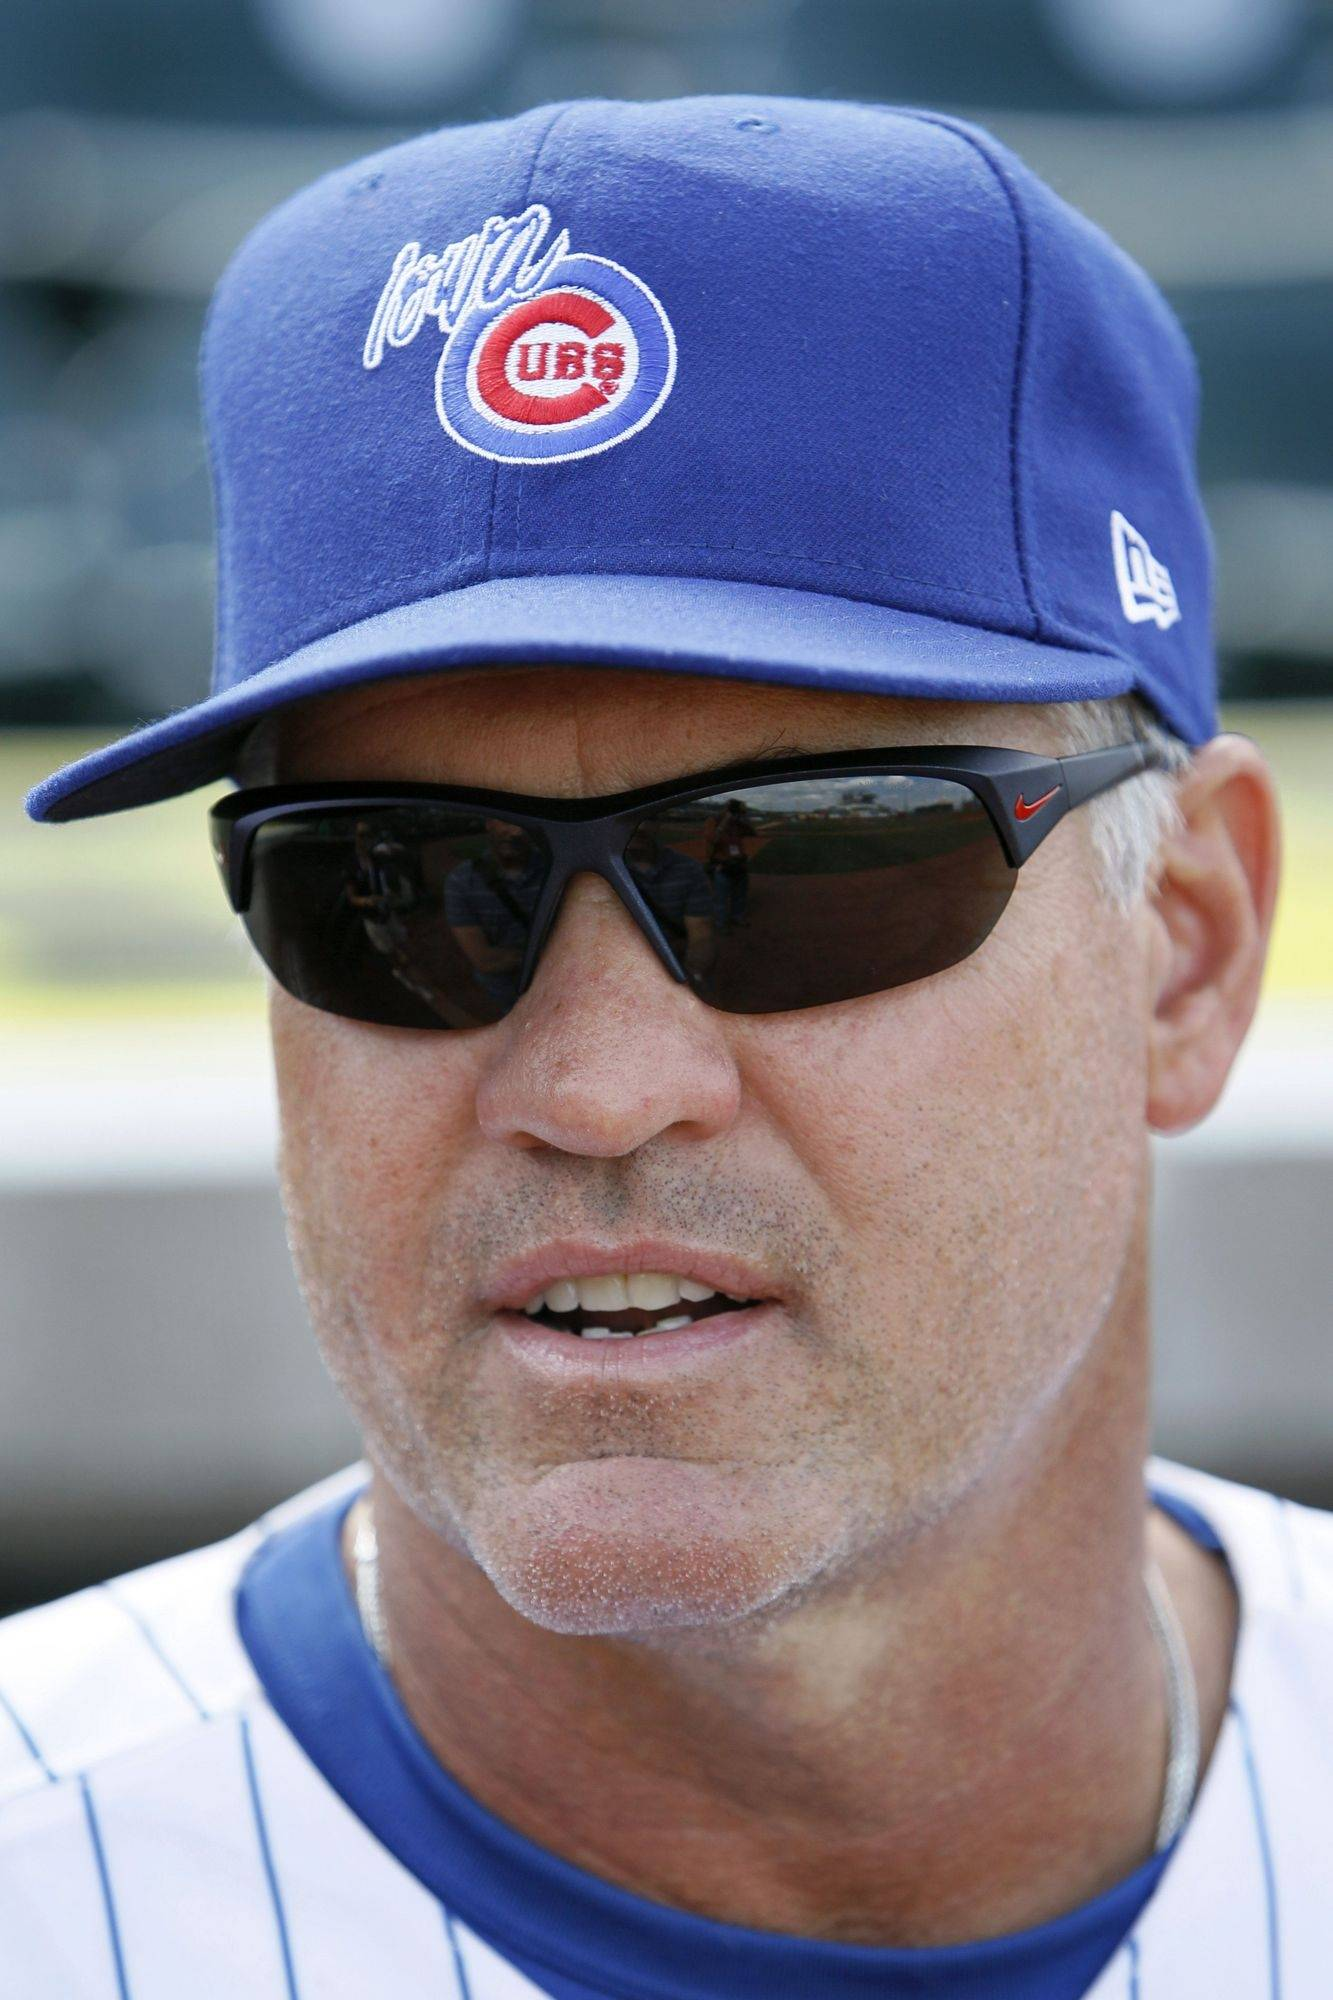 Iowa Cubs manager Ryne Sandberg looks on before his team's baseball game against the Oklahoma City Redhawks Tuesday.